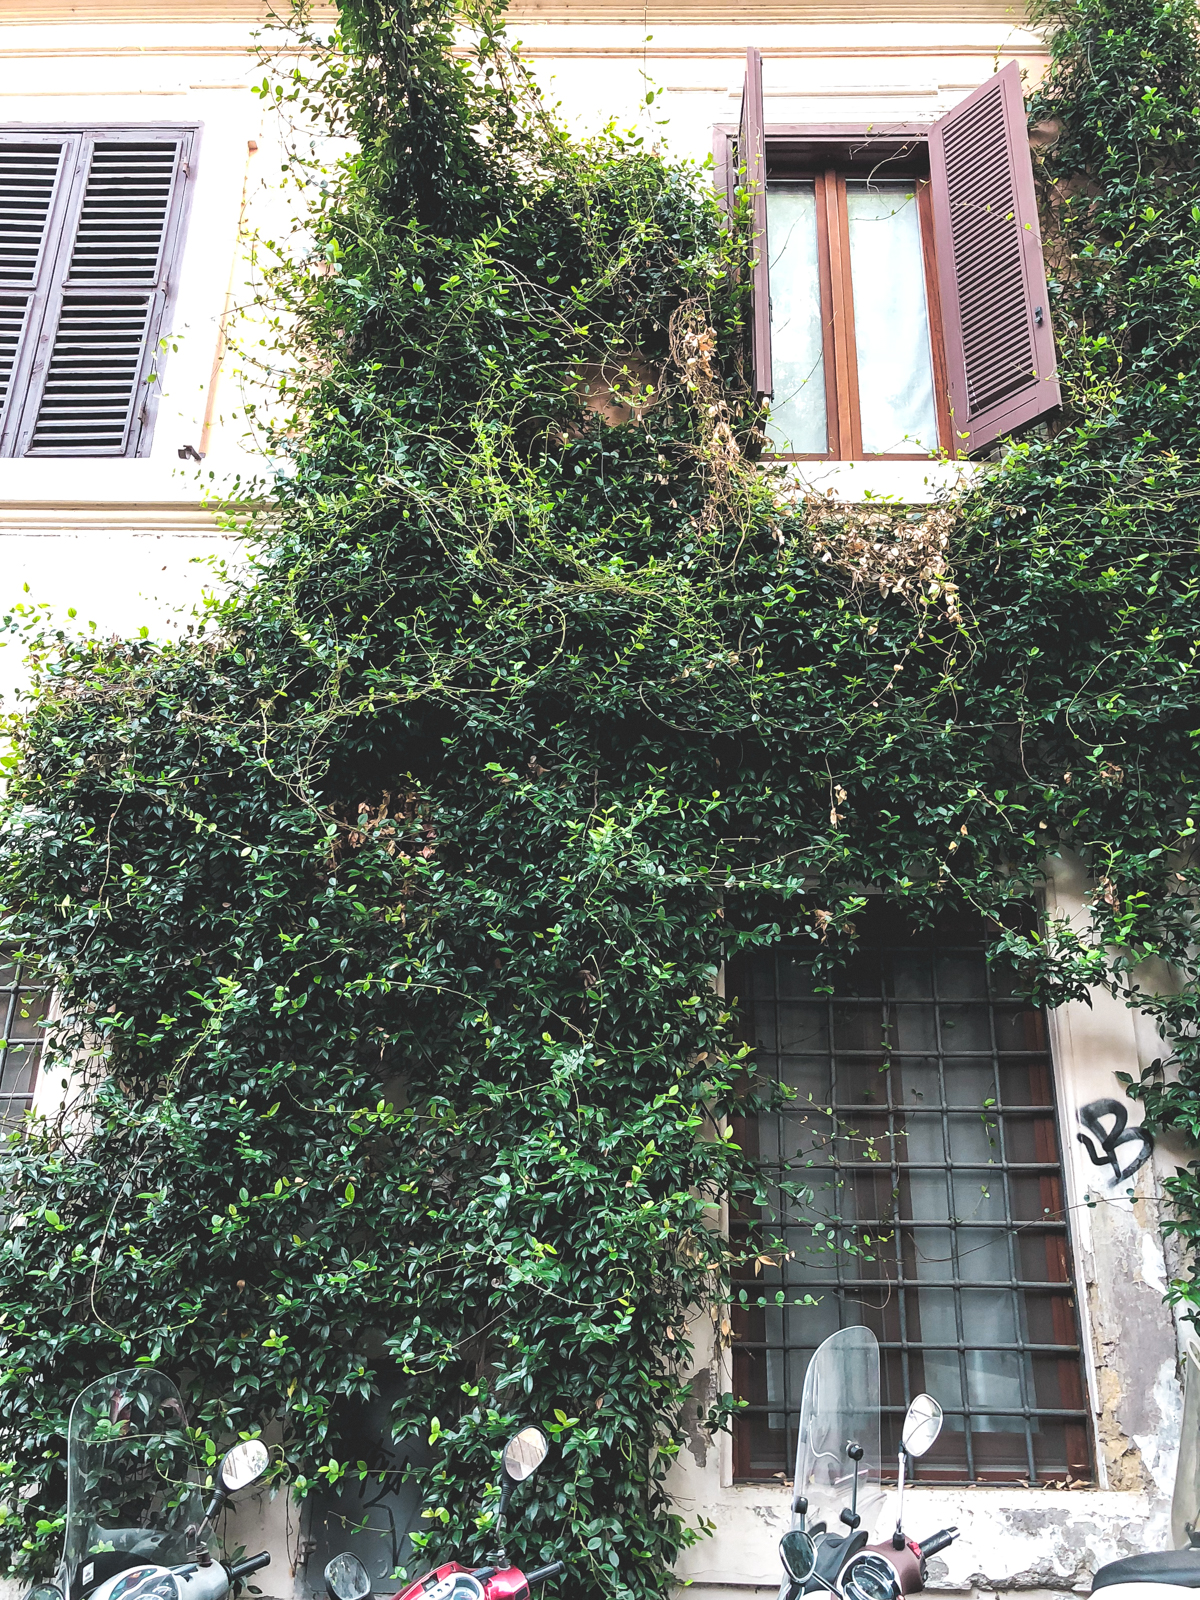 vines growing on the side of a building in Trastevere